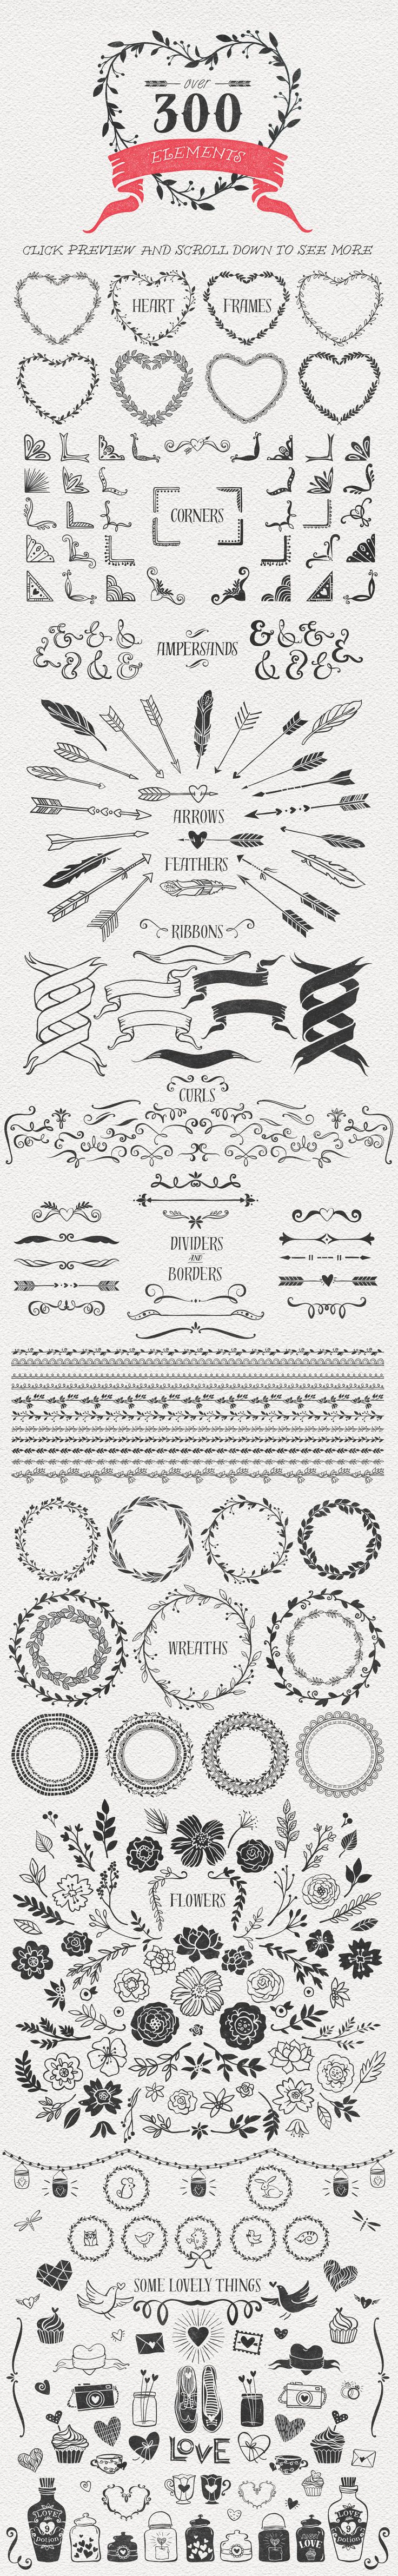 Hand Drawn Romantic Decoration Pack by kite-kit on Creative Market